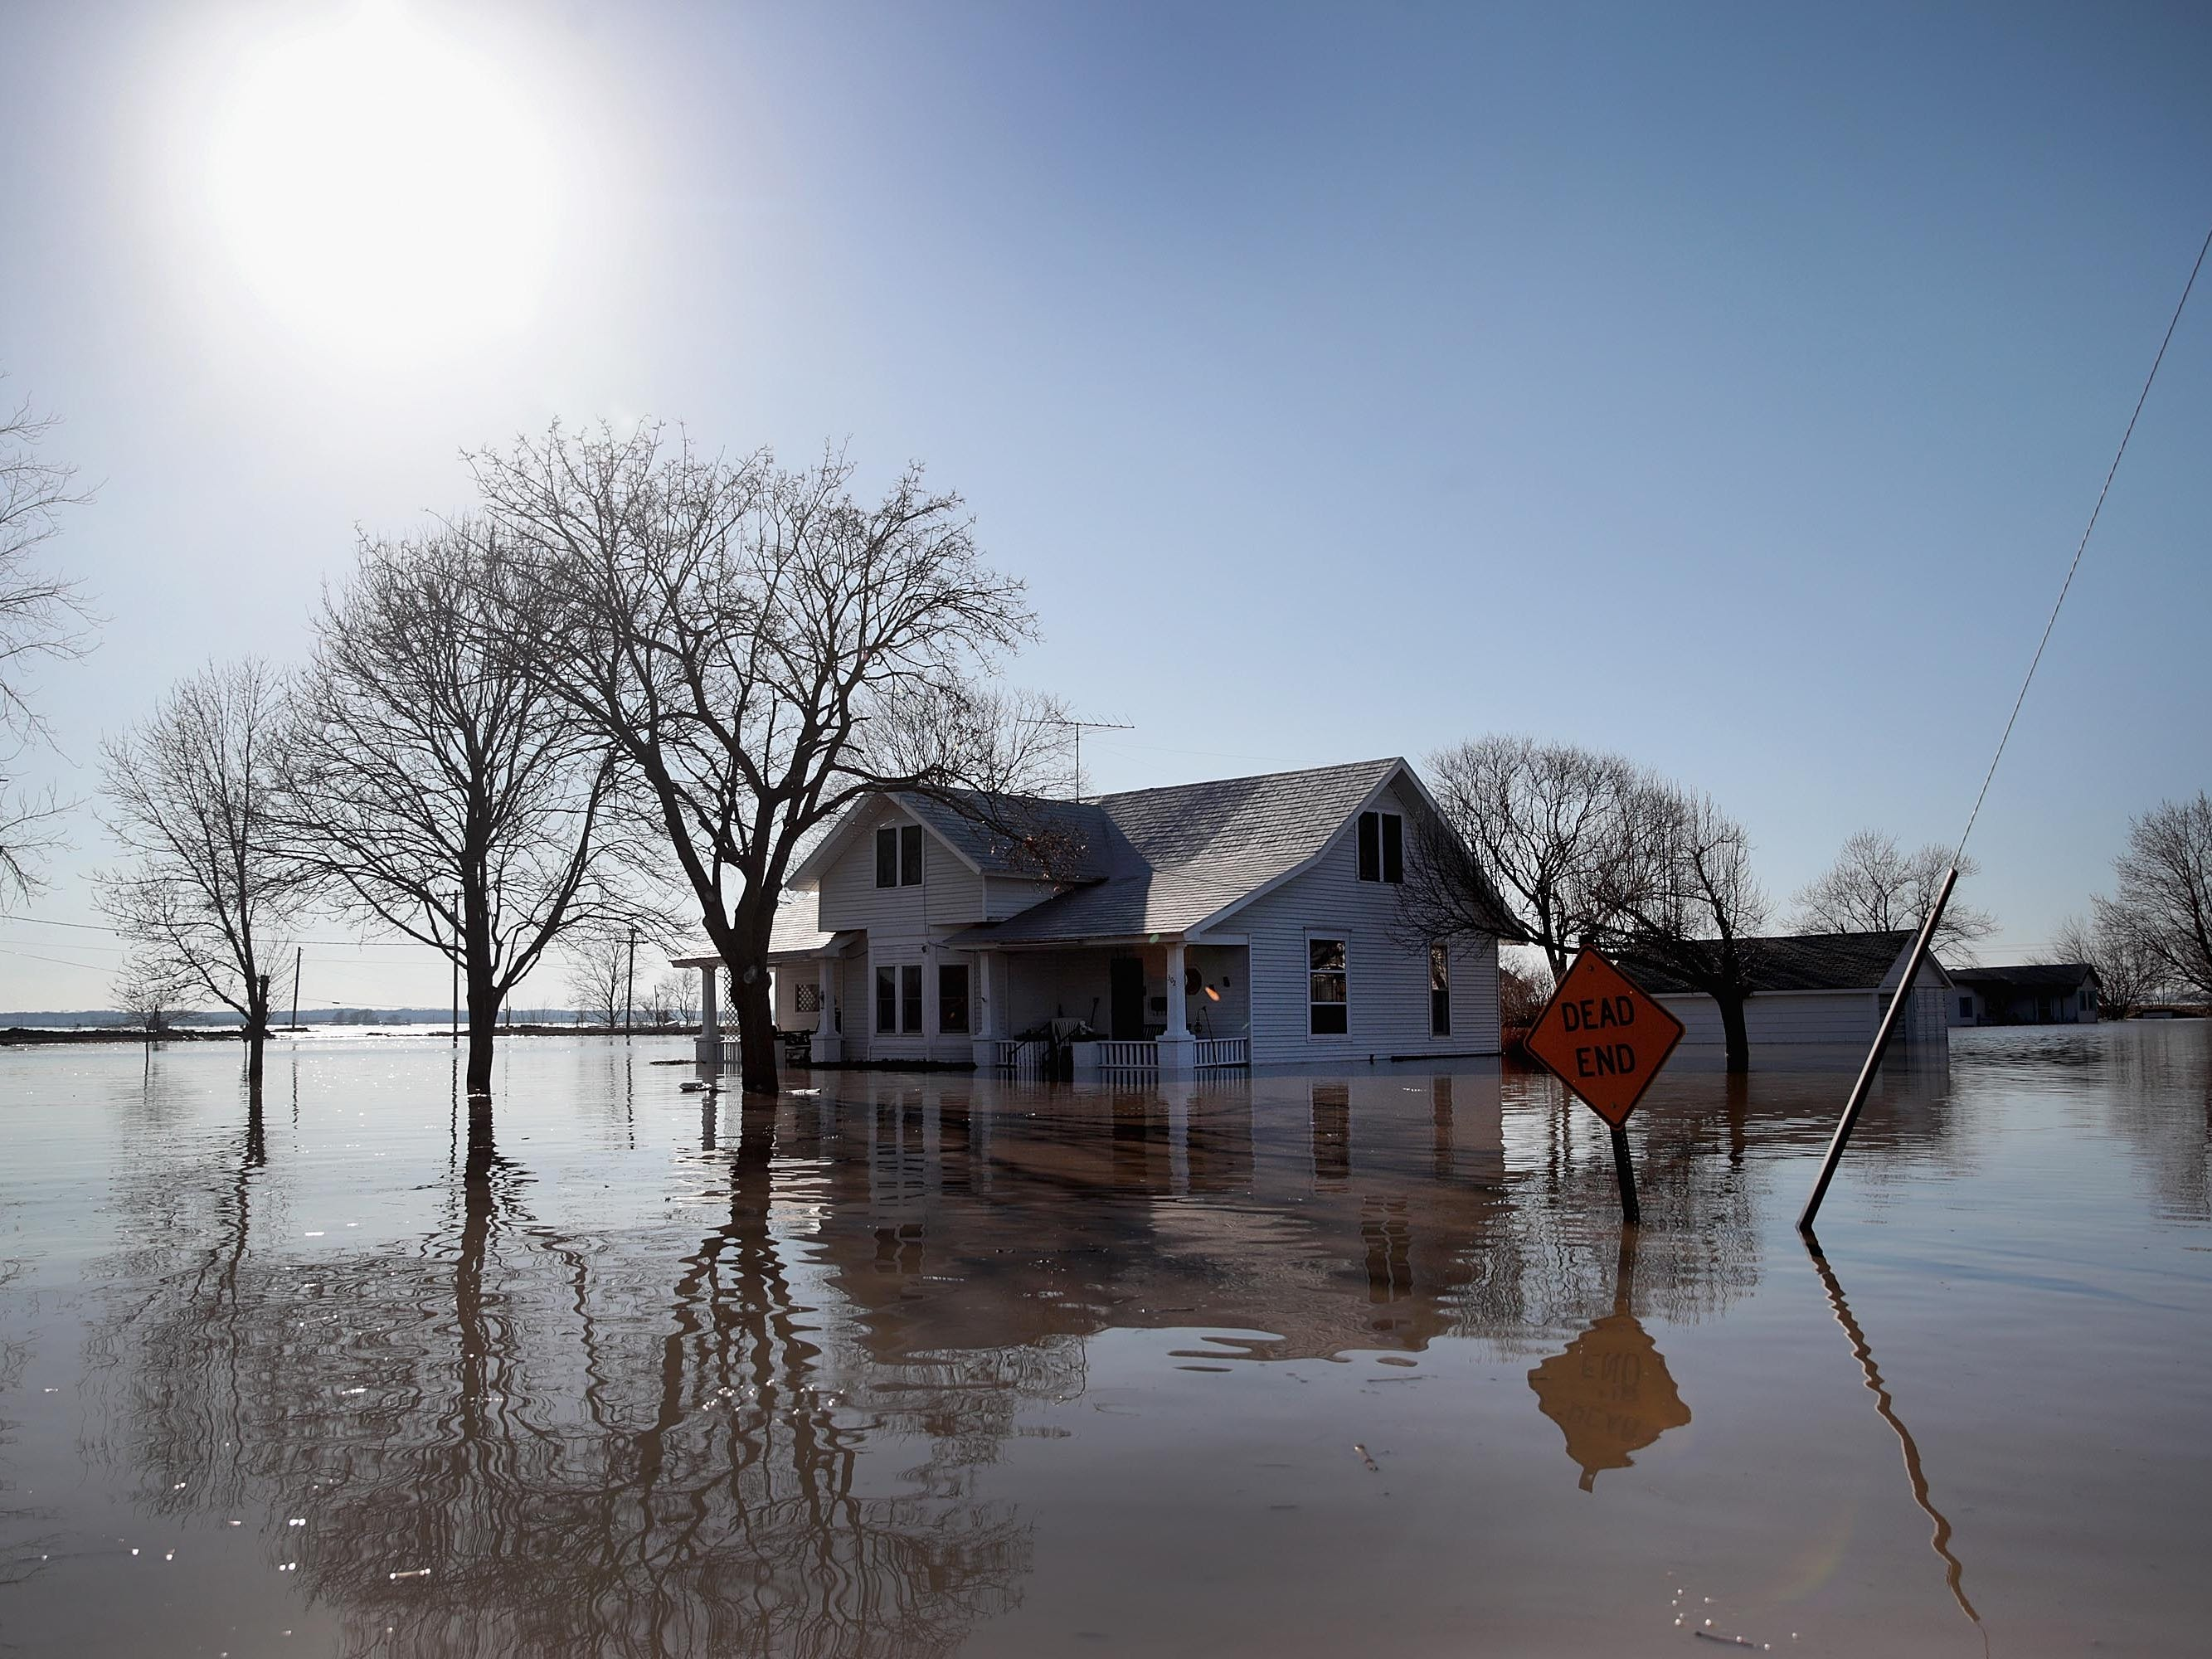 A home is surrounded by floodwater on March 21, 2019 in Craig, Missouri.